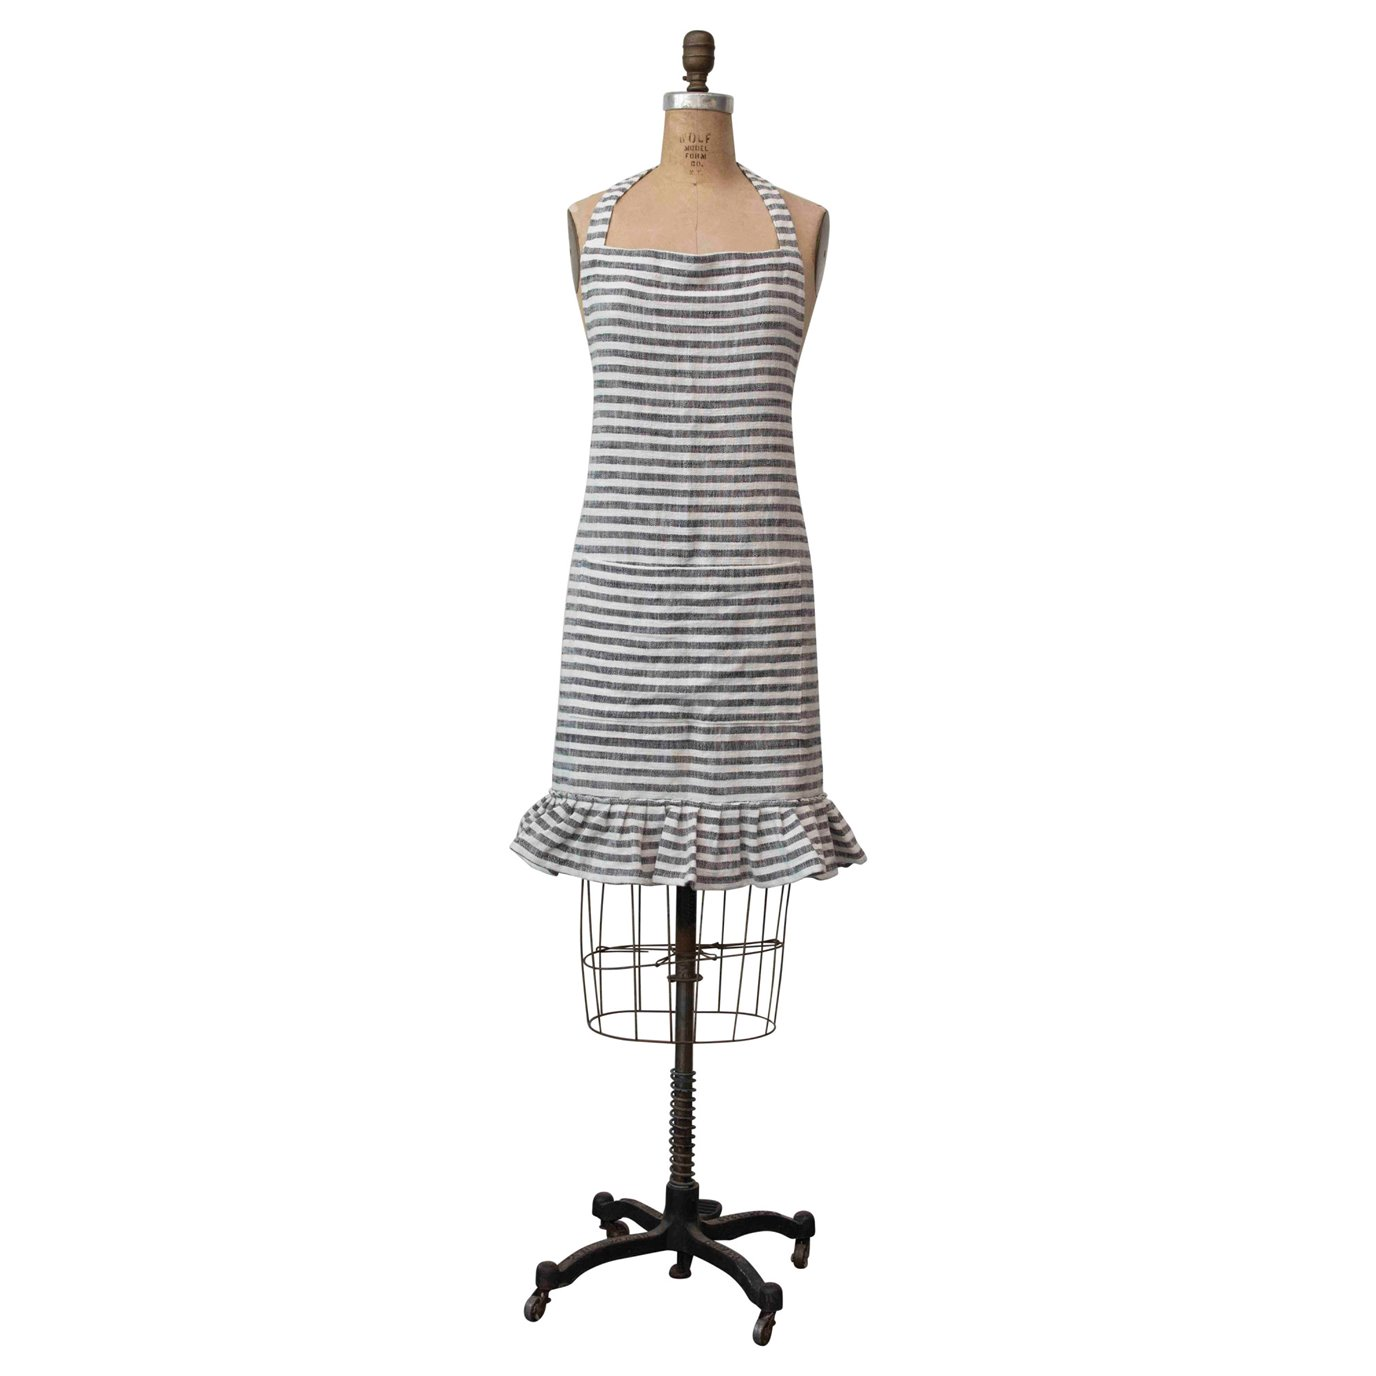 Ruffled Cotton Striped Apron with Pocket